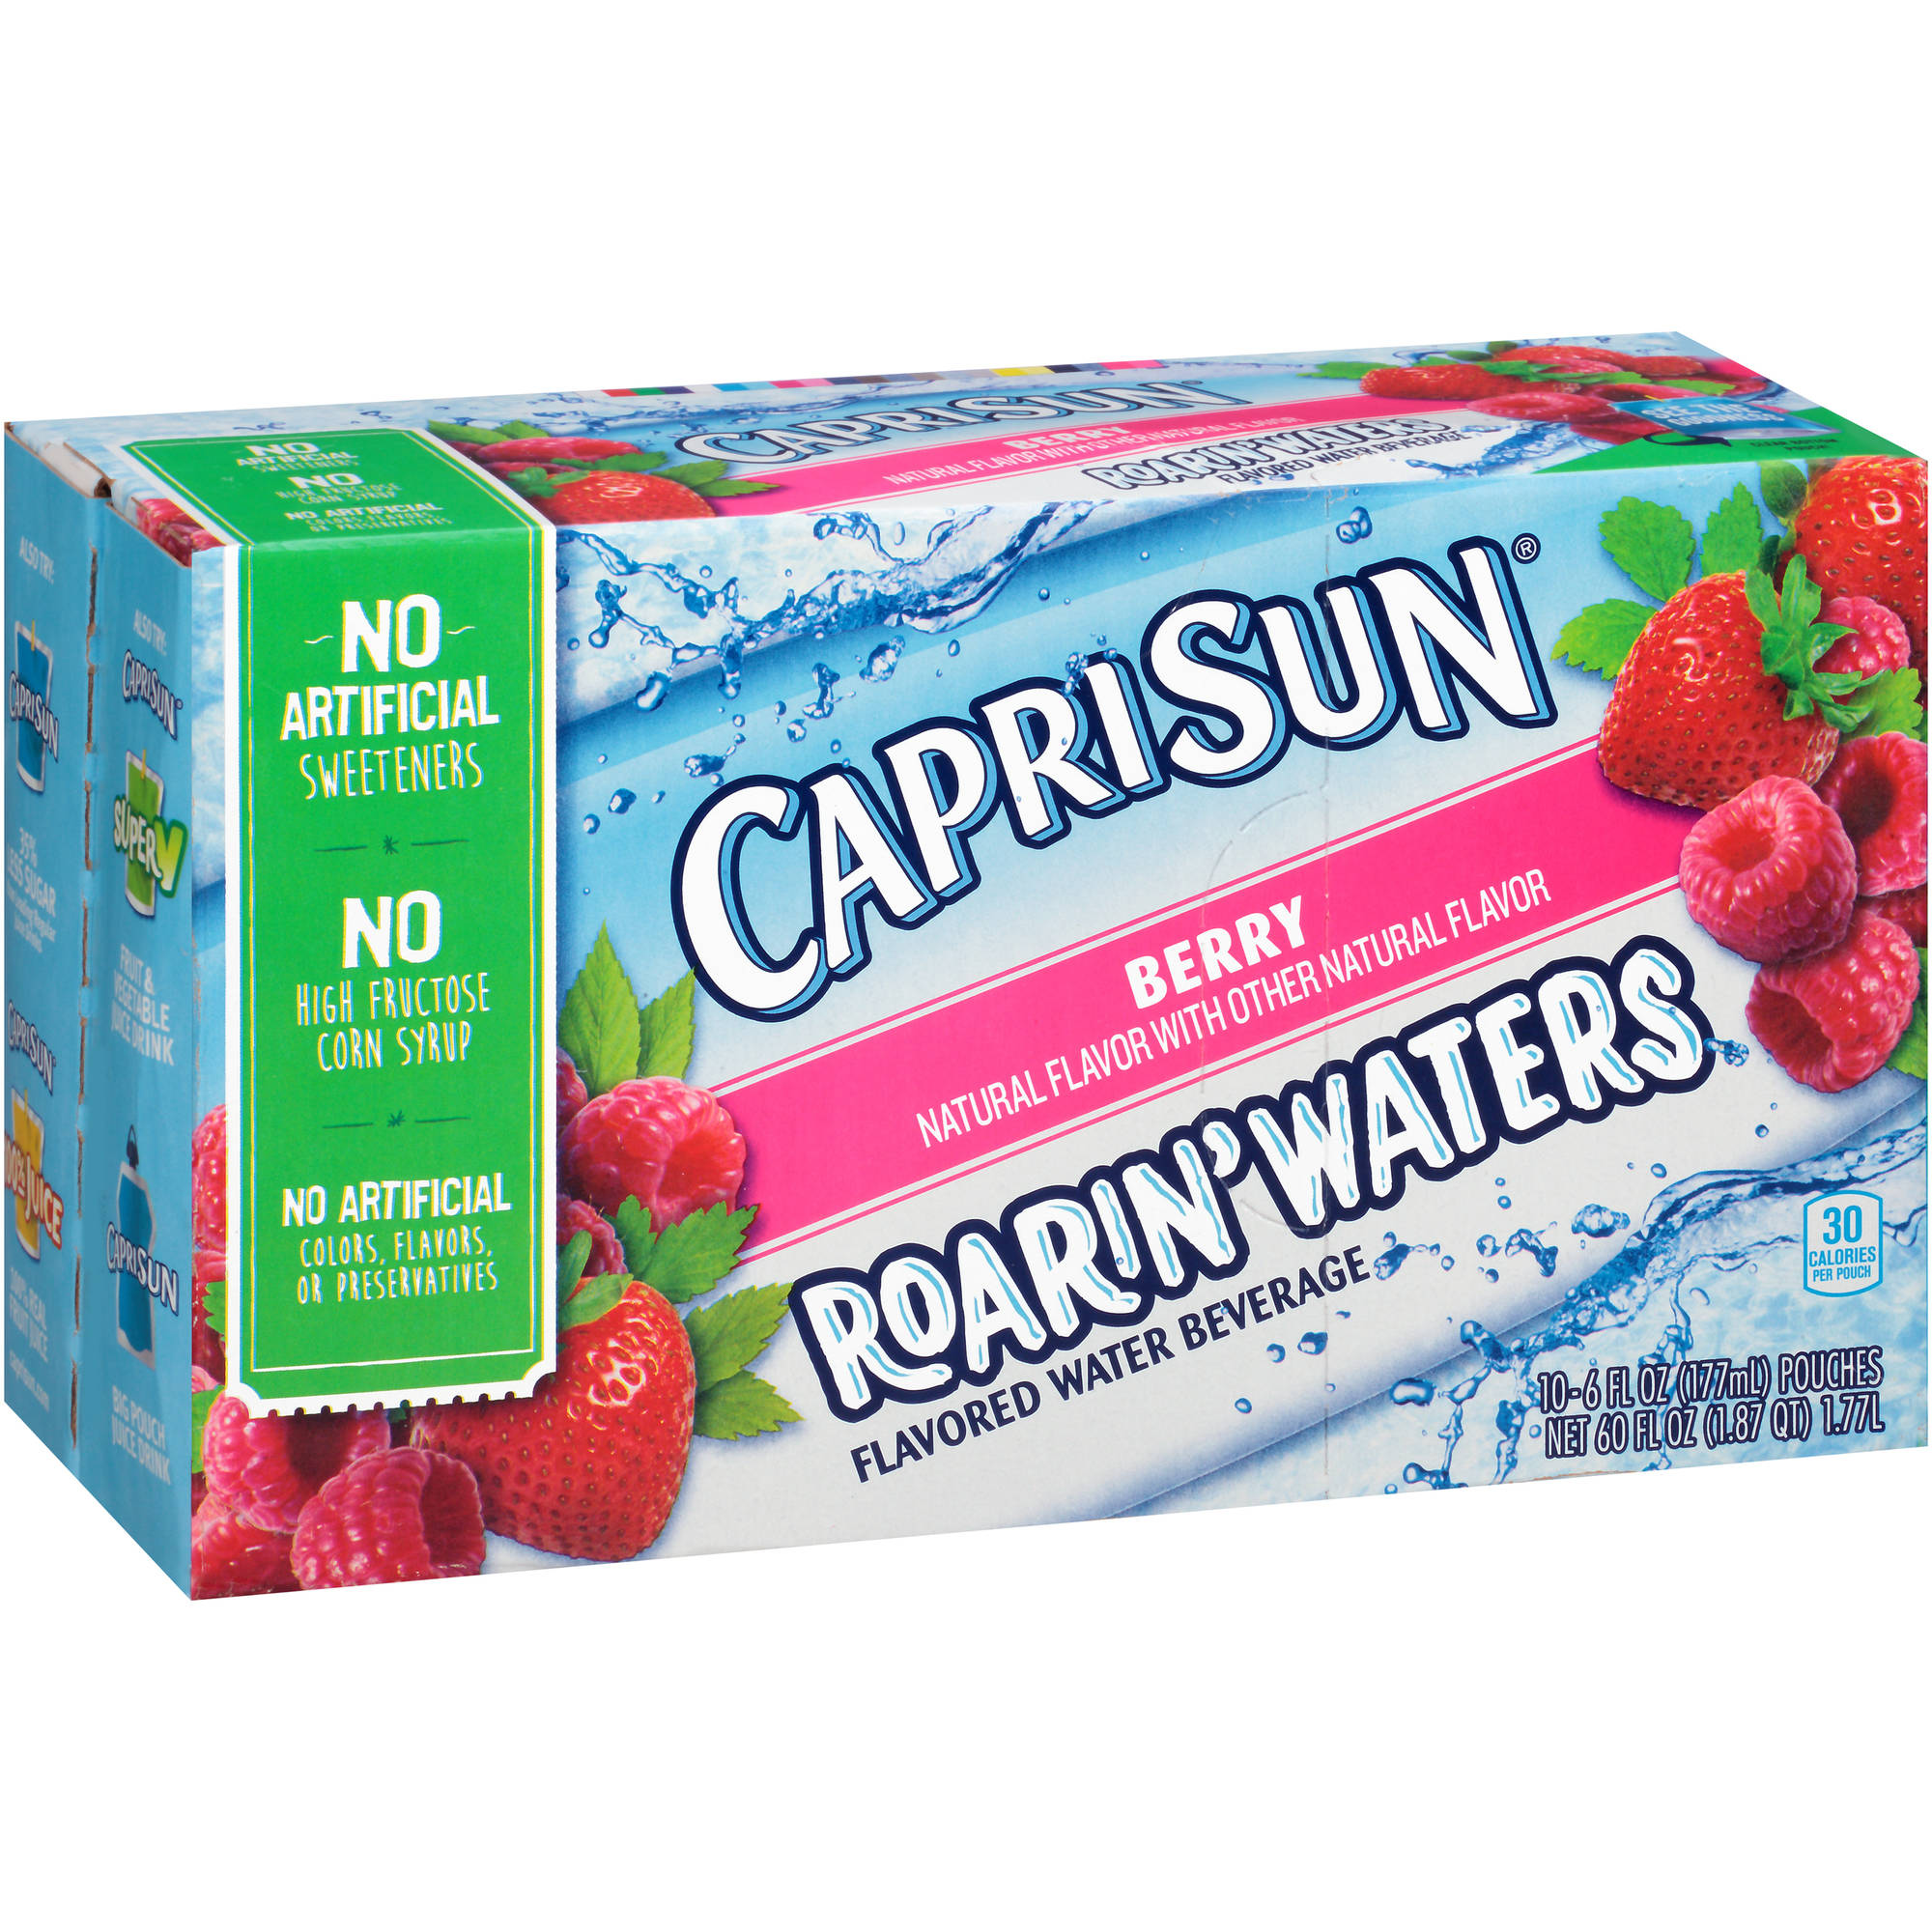 Capri Sun Roarin' Waters Berry Flavored Water Beverage, 6 fl oz, 10 count